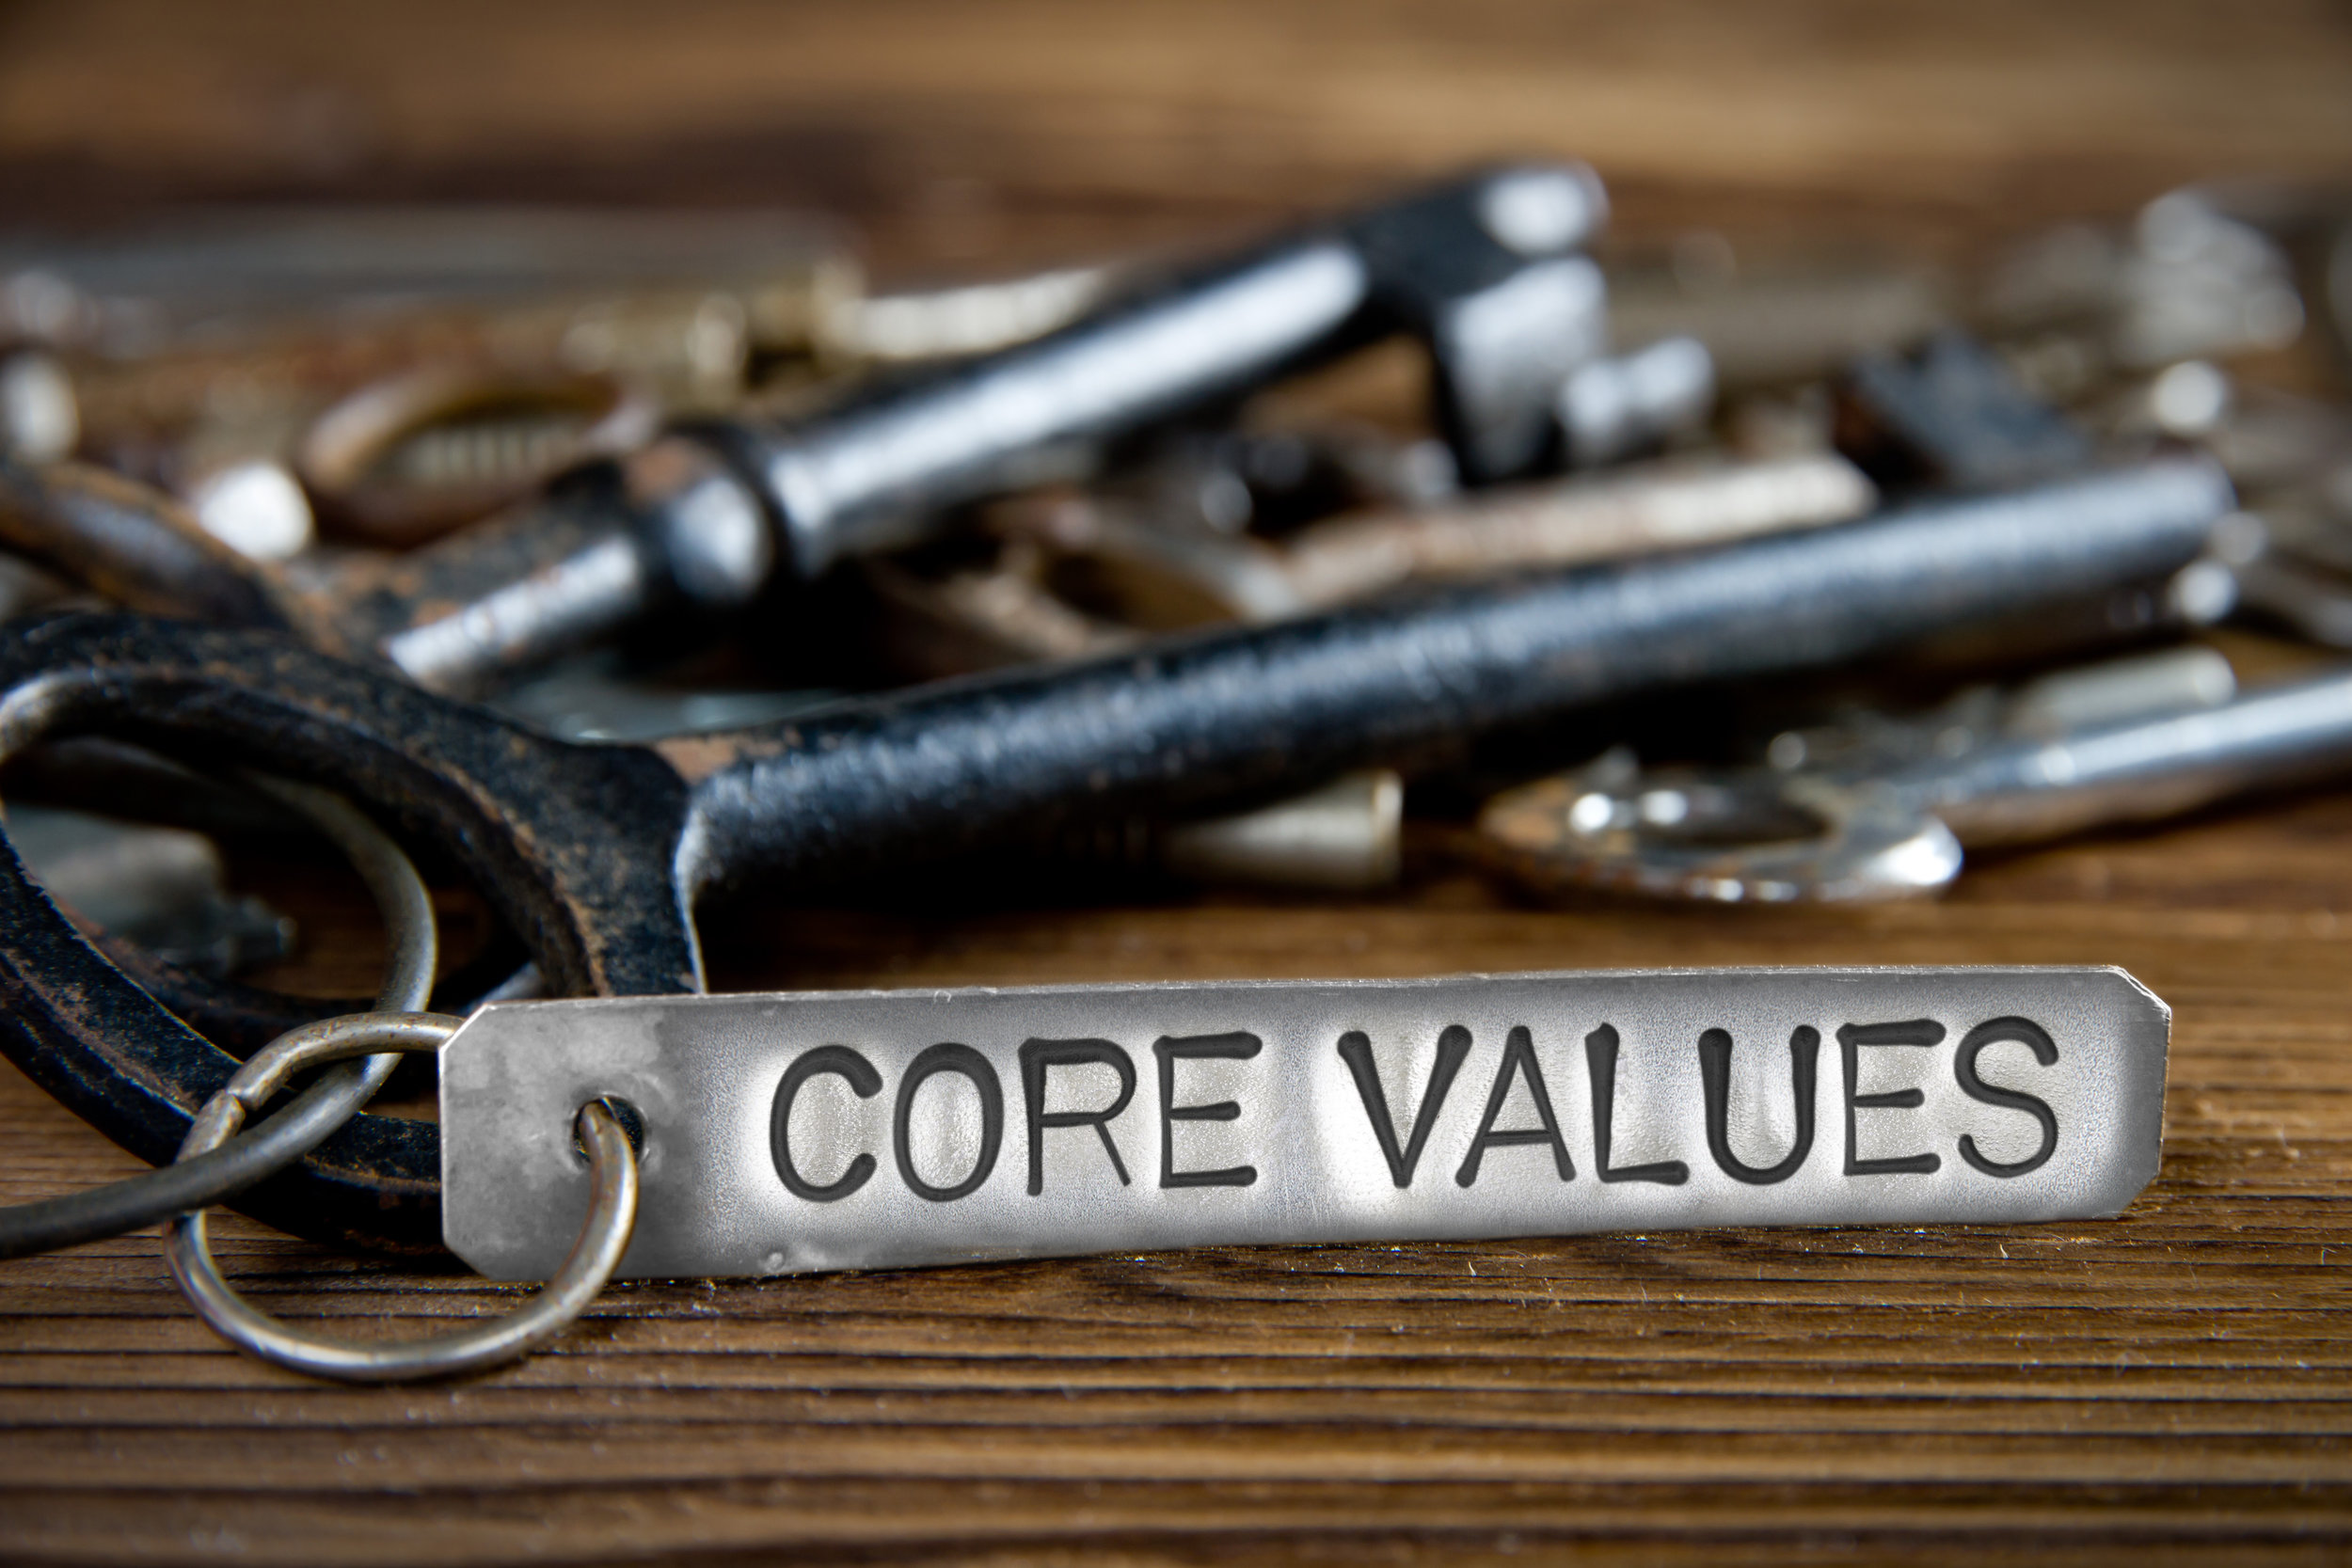 CORE VALUES IN ACTION - VALUES AREN'T JUST WORDS; THEY ARE MUSCLES.